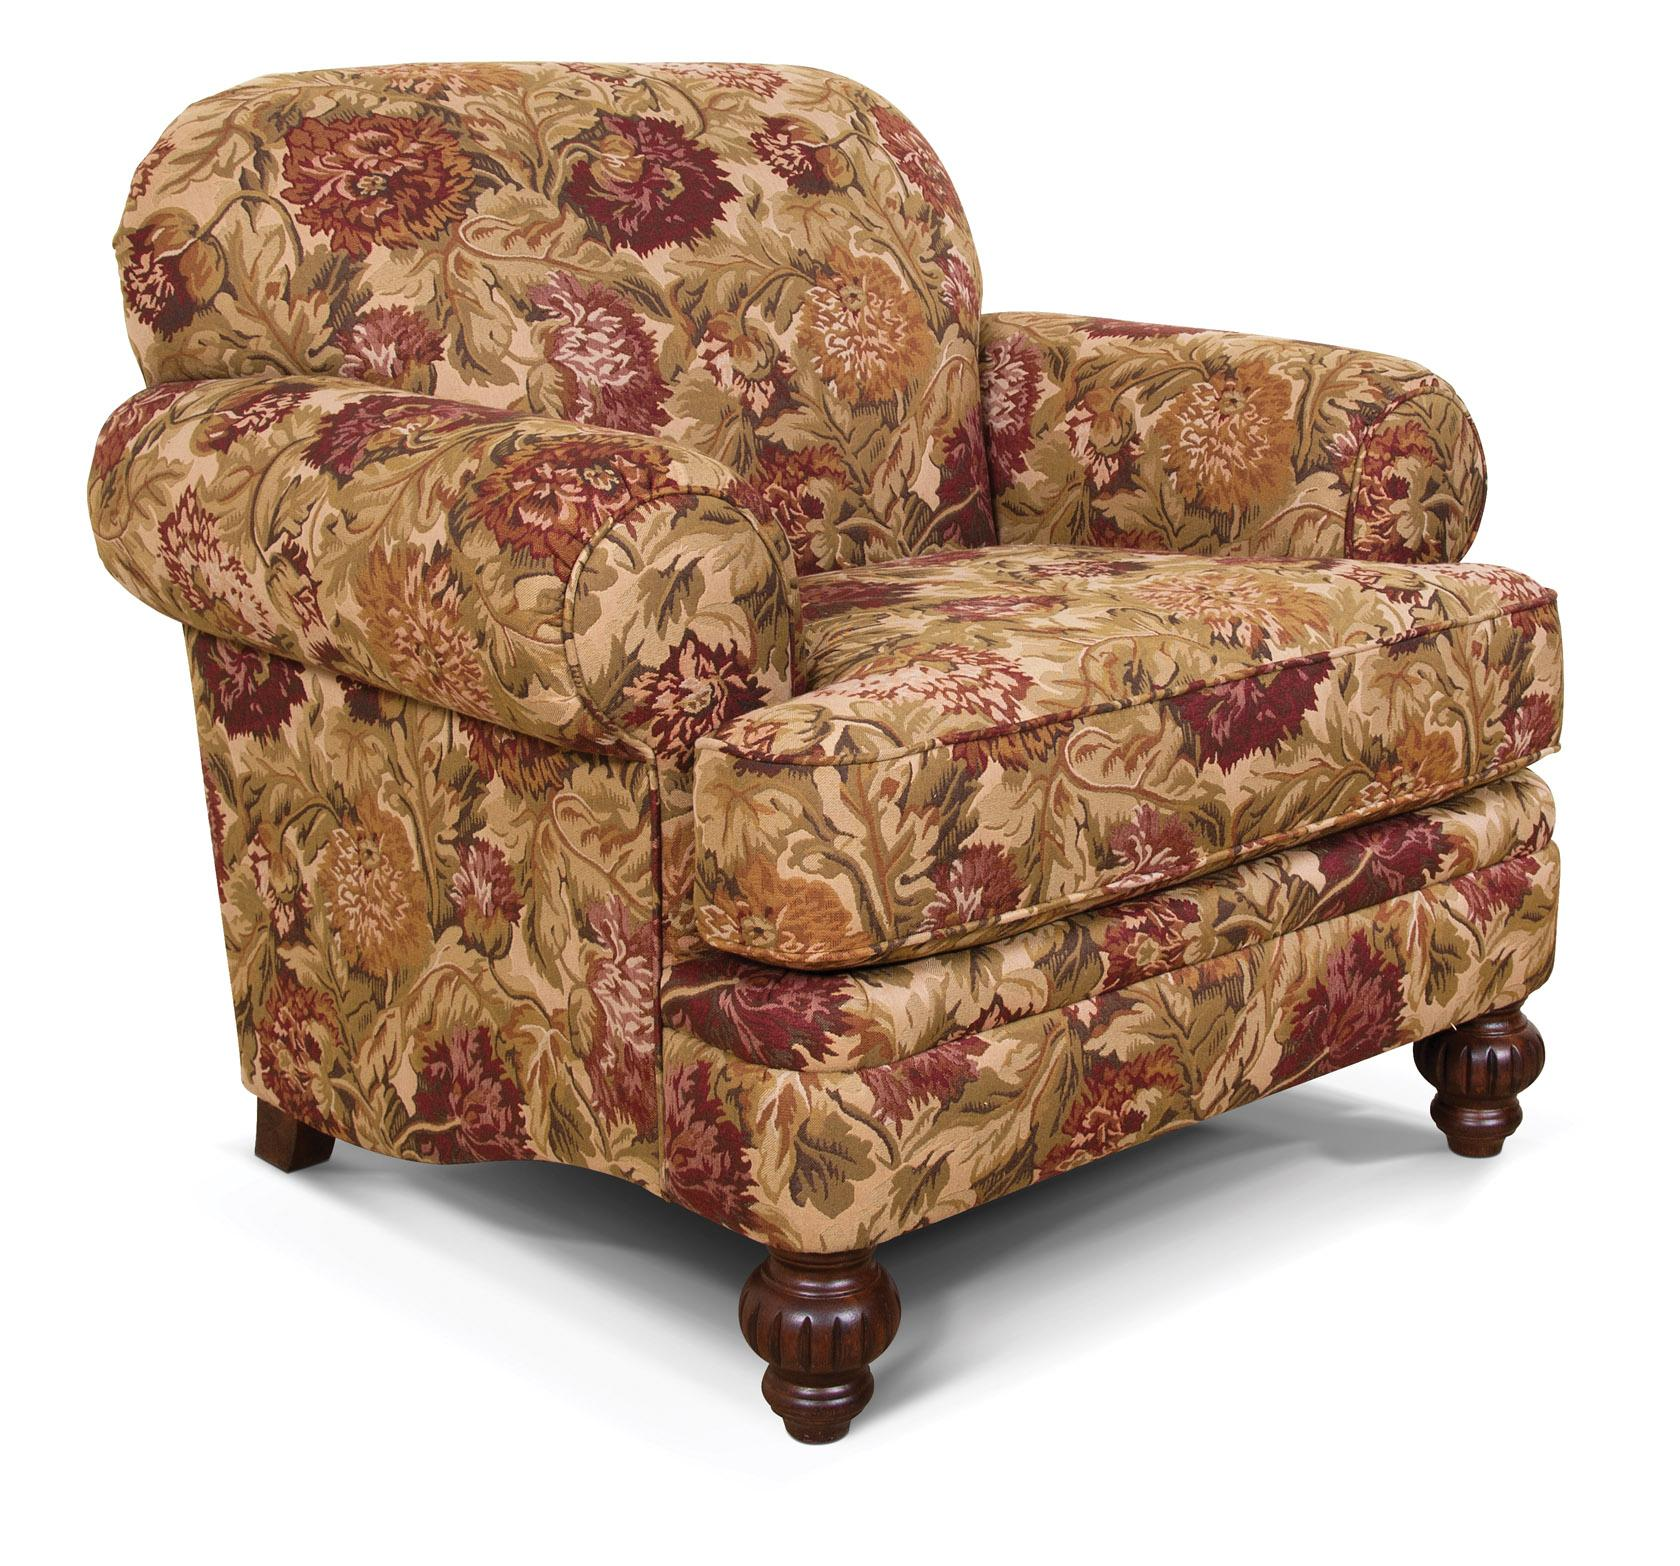 England Kathy Rolled Arm Upholstered Chair - Item Number: 2534